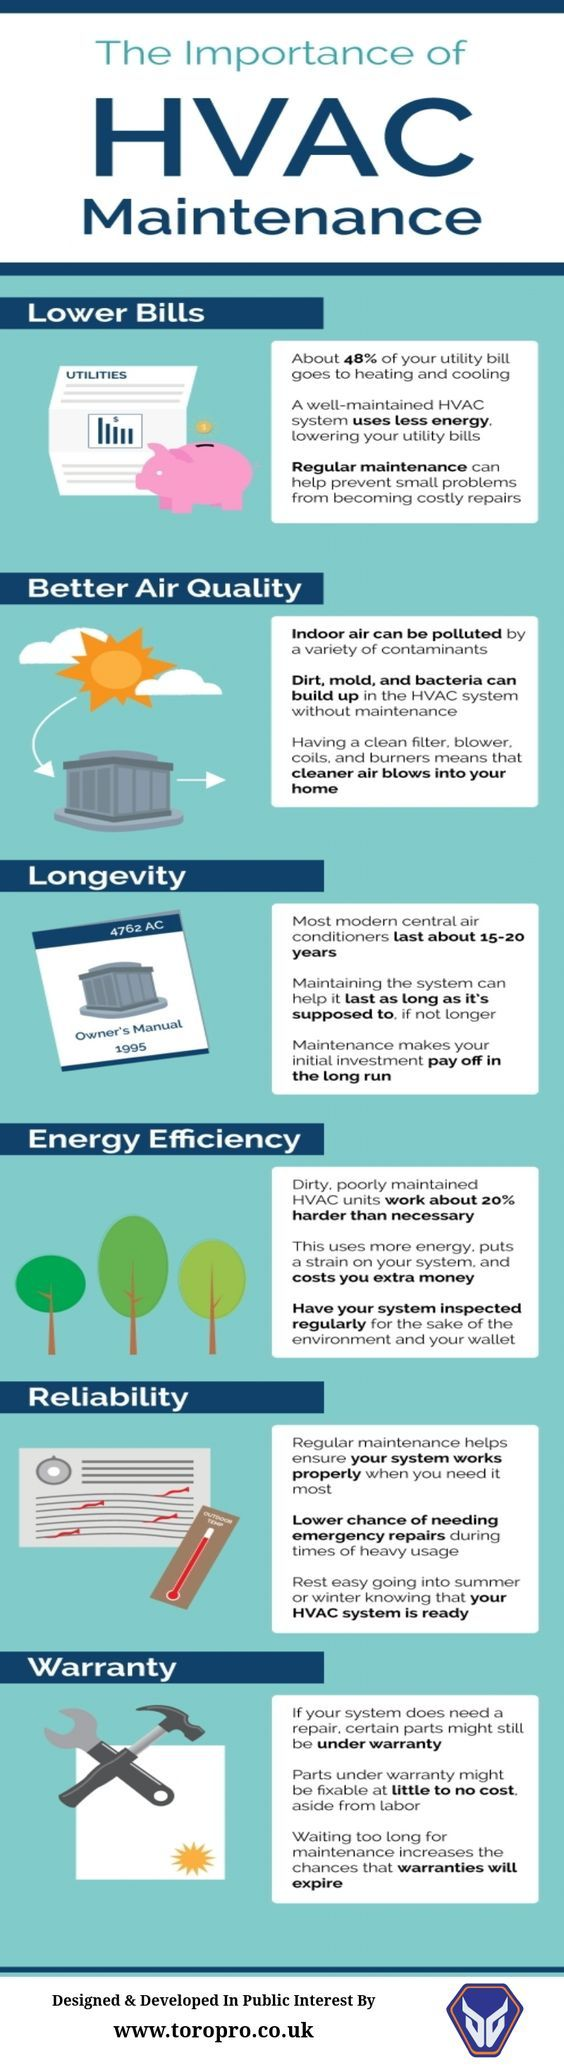 The Importance of HVAC Maintenance (infographic)